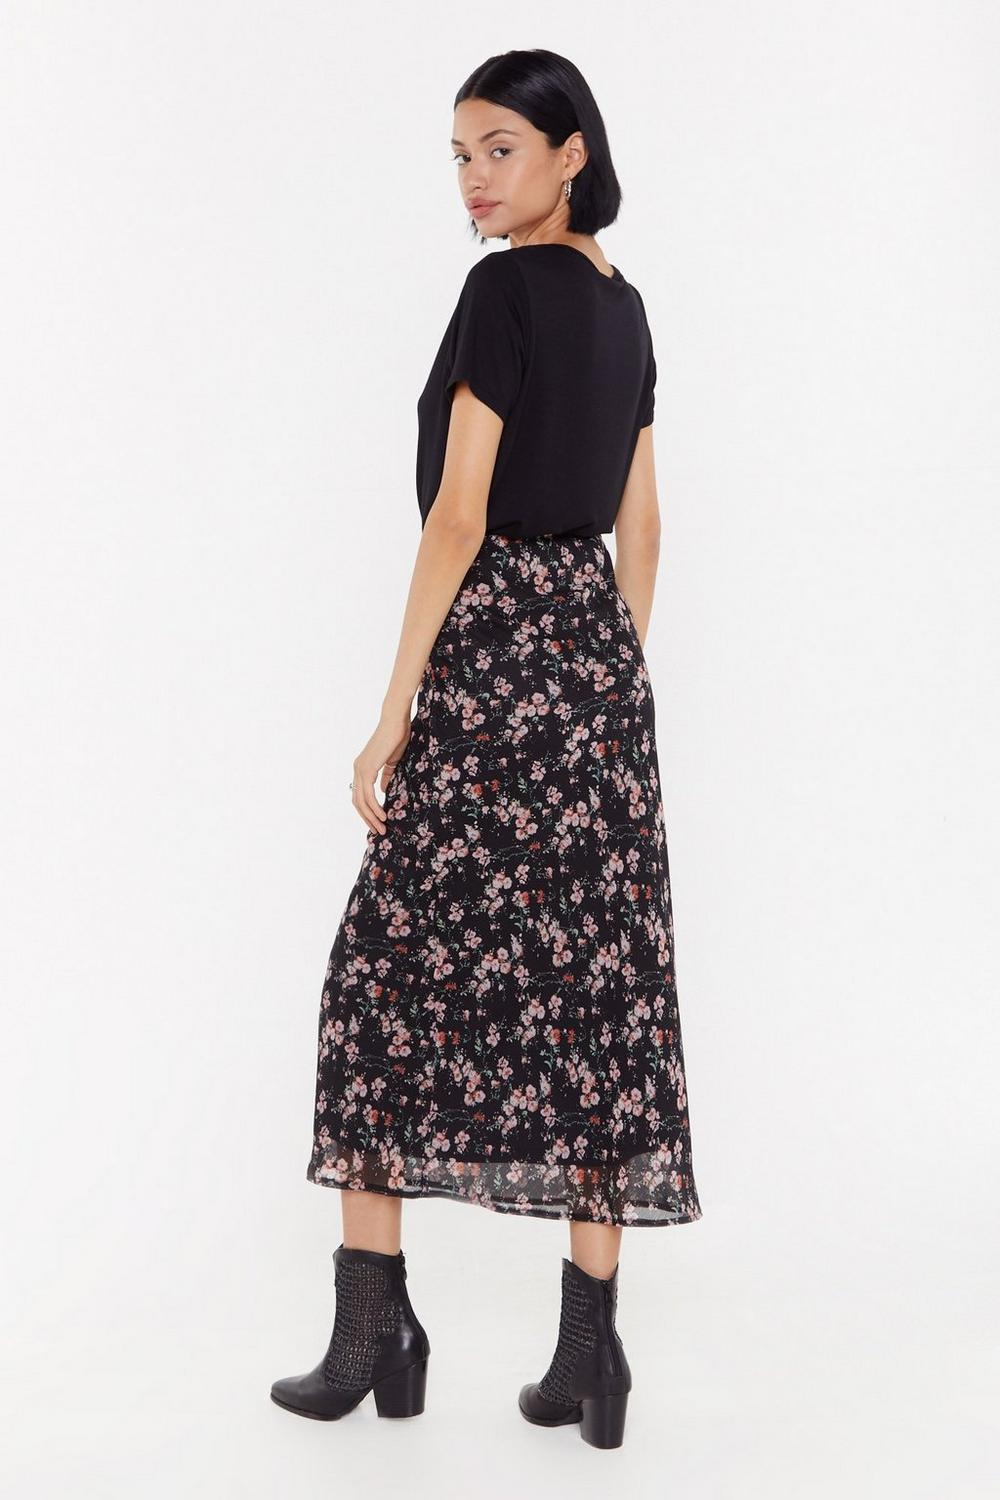 b214a5f2e98e Bias Cut Midaxi Skirt In Crinkle Red Floral | Shop Clothes at Nasty Gal!